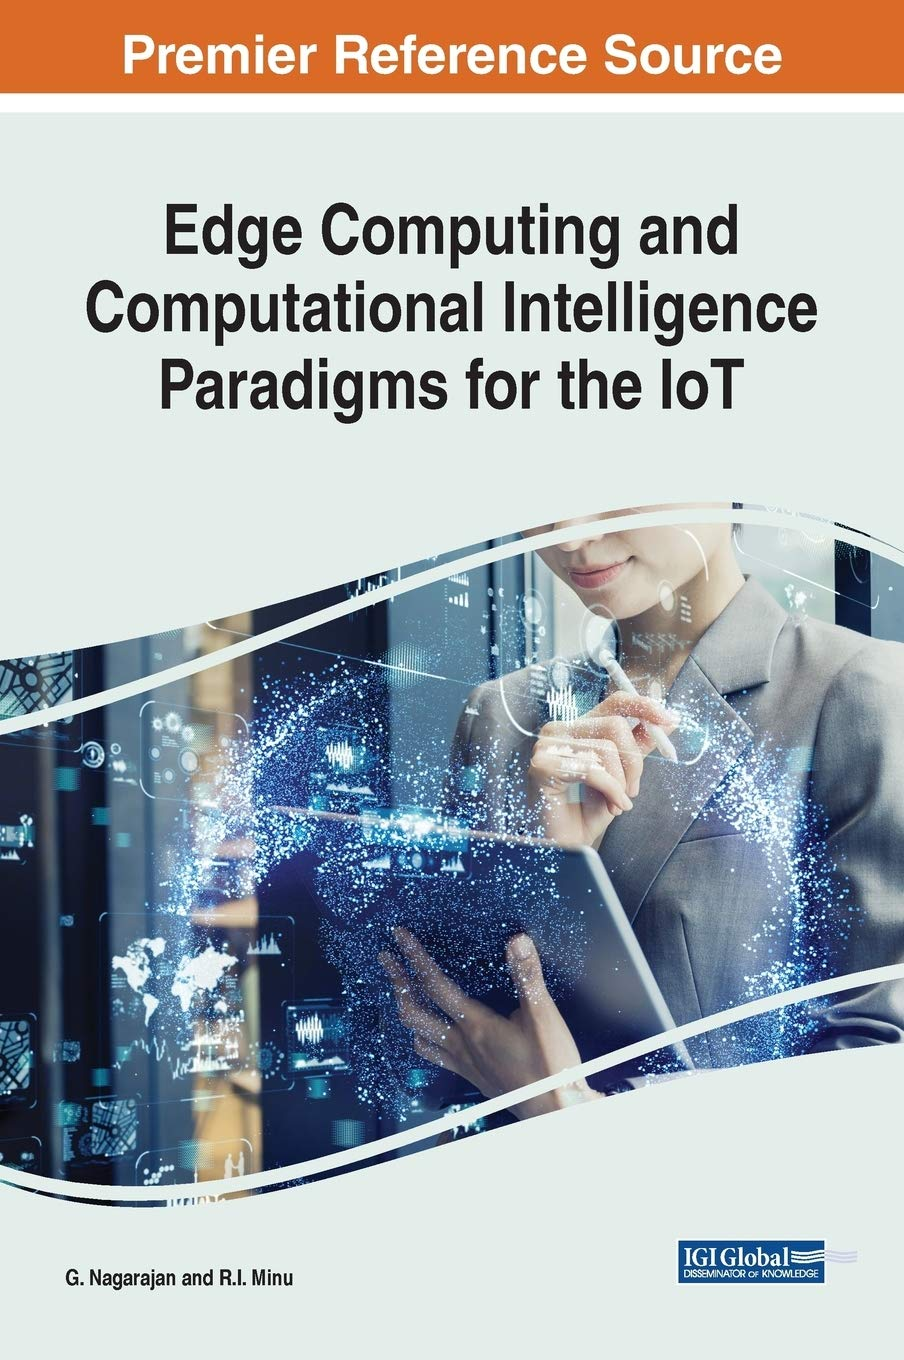 Handbook of Research on Edge Computing and Computational Intelligence Paradigms for the IoT (Advances in Computational Intelligence and Robotics)